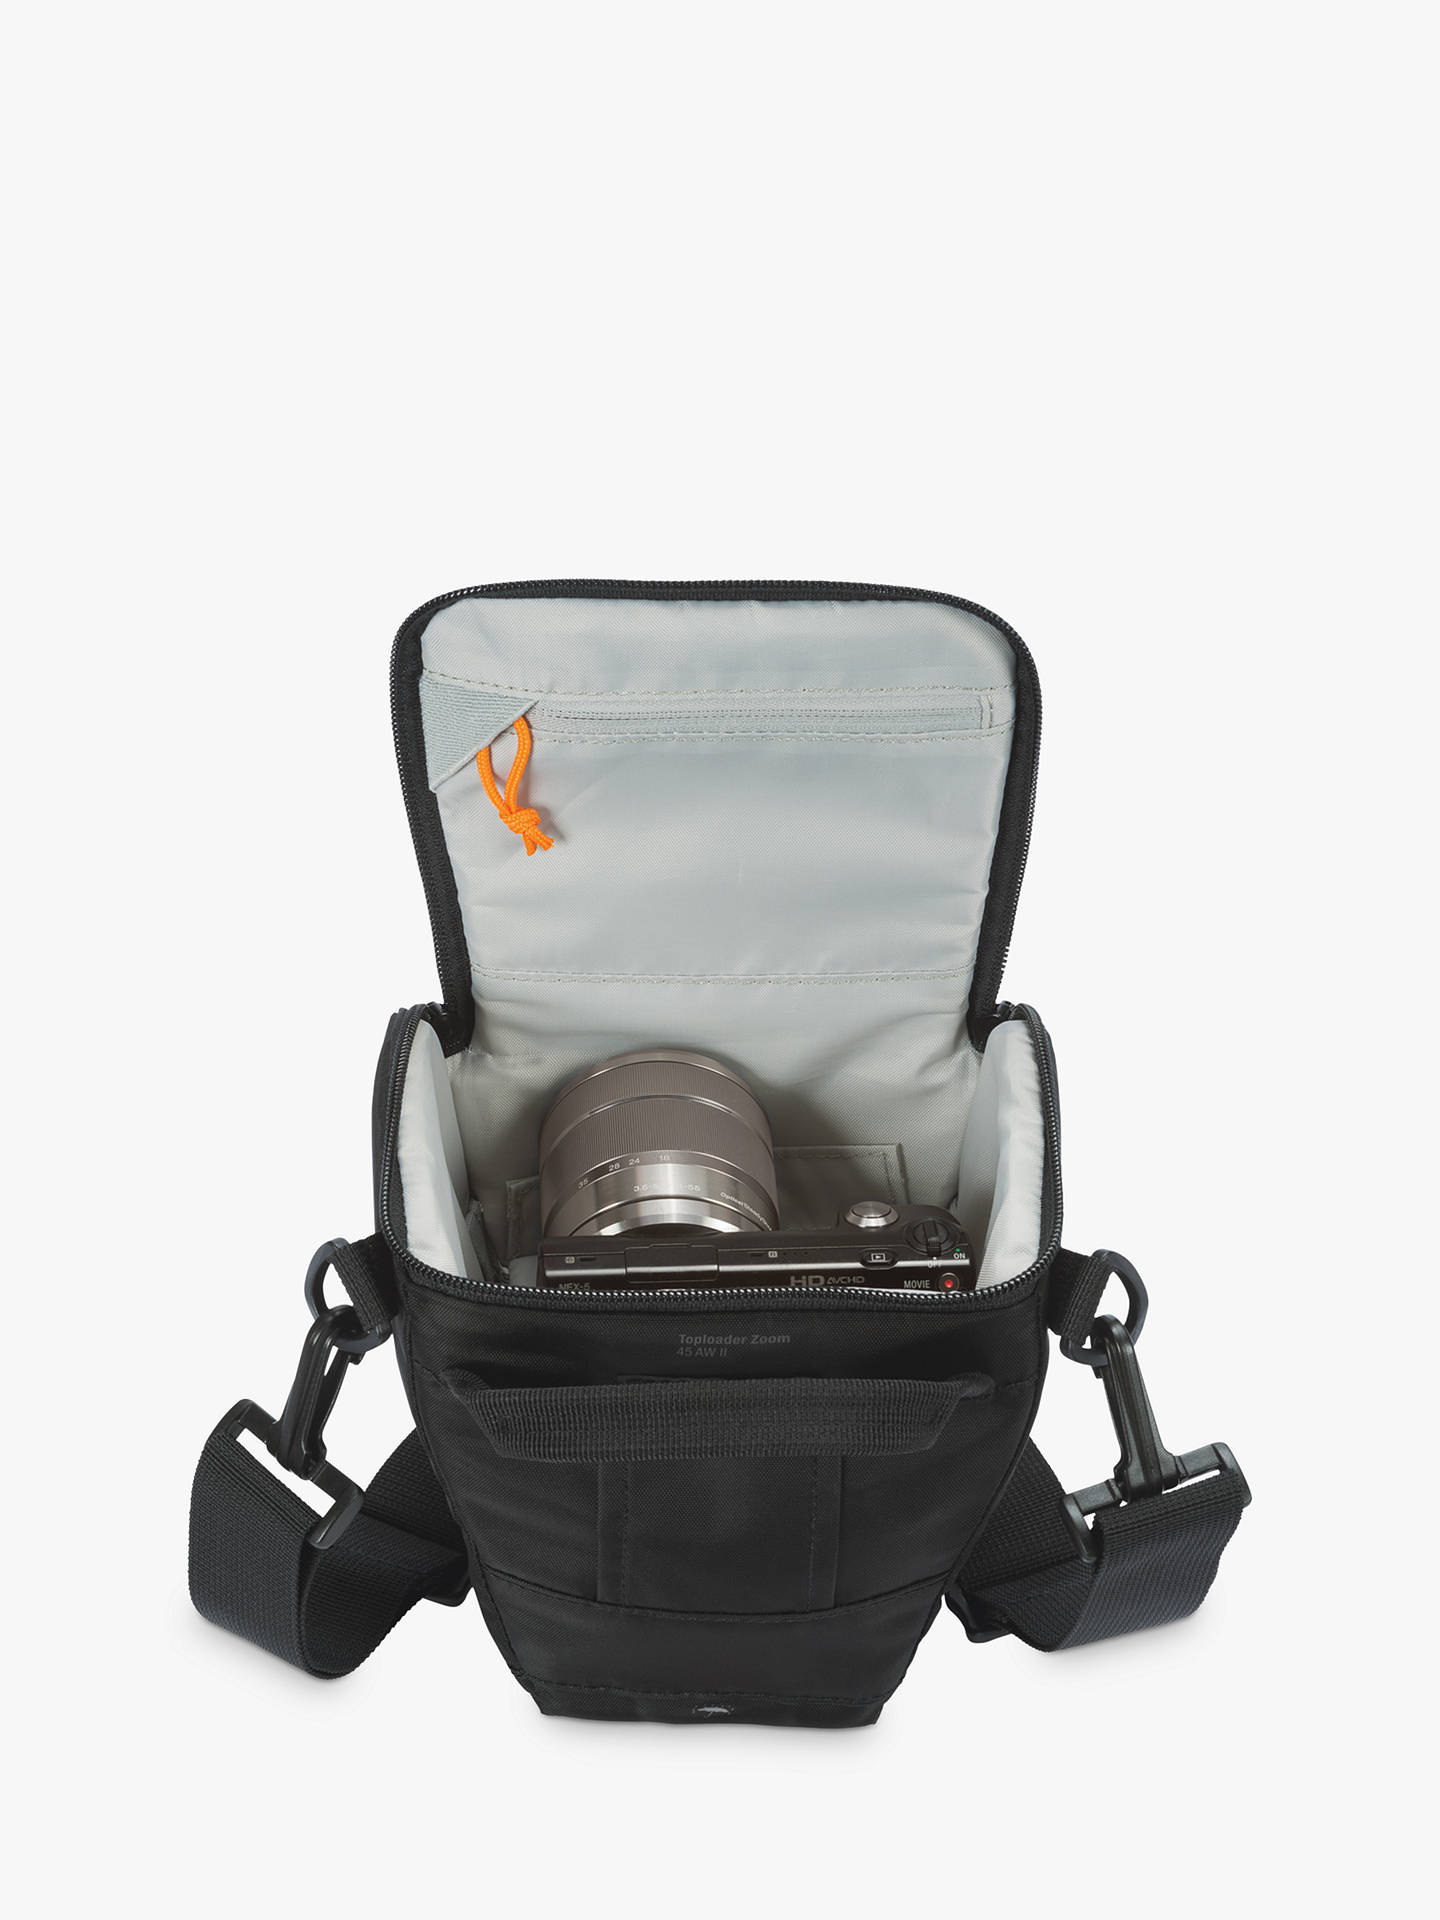 Topload Zoom AW Camera Bag by Lowepro